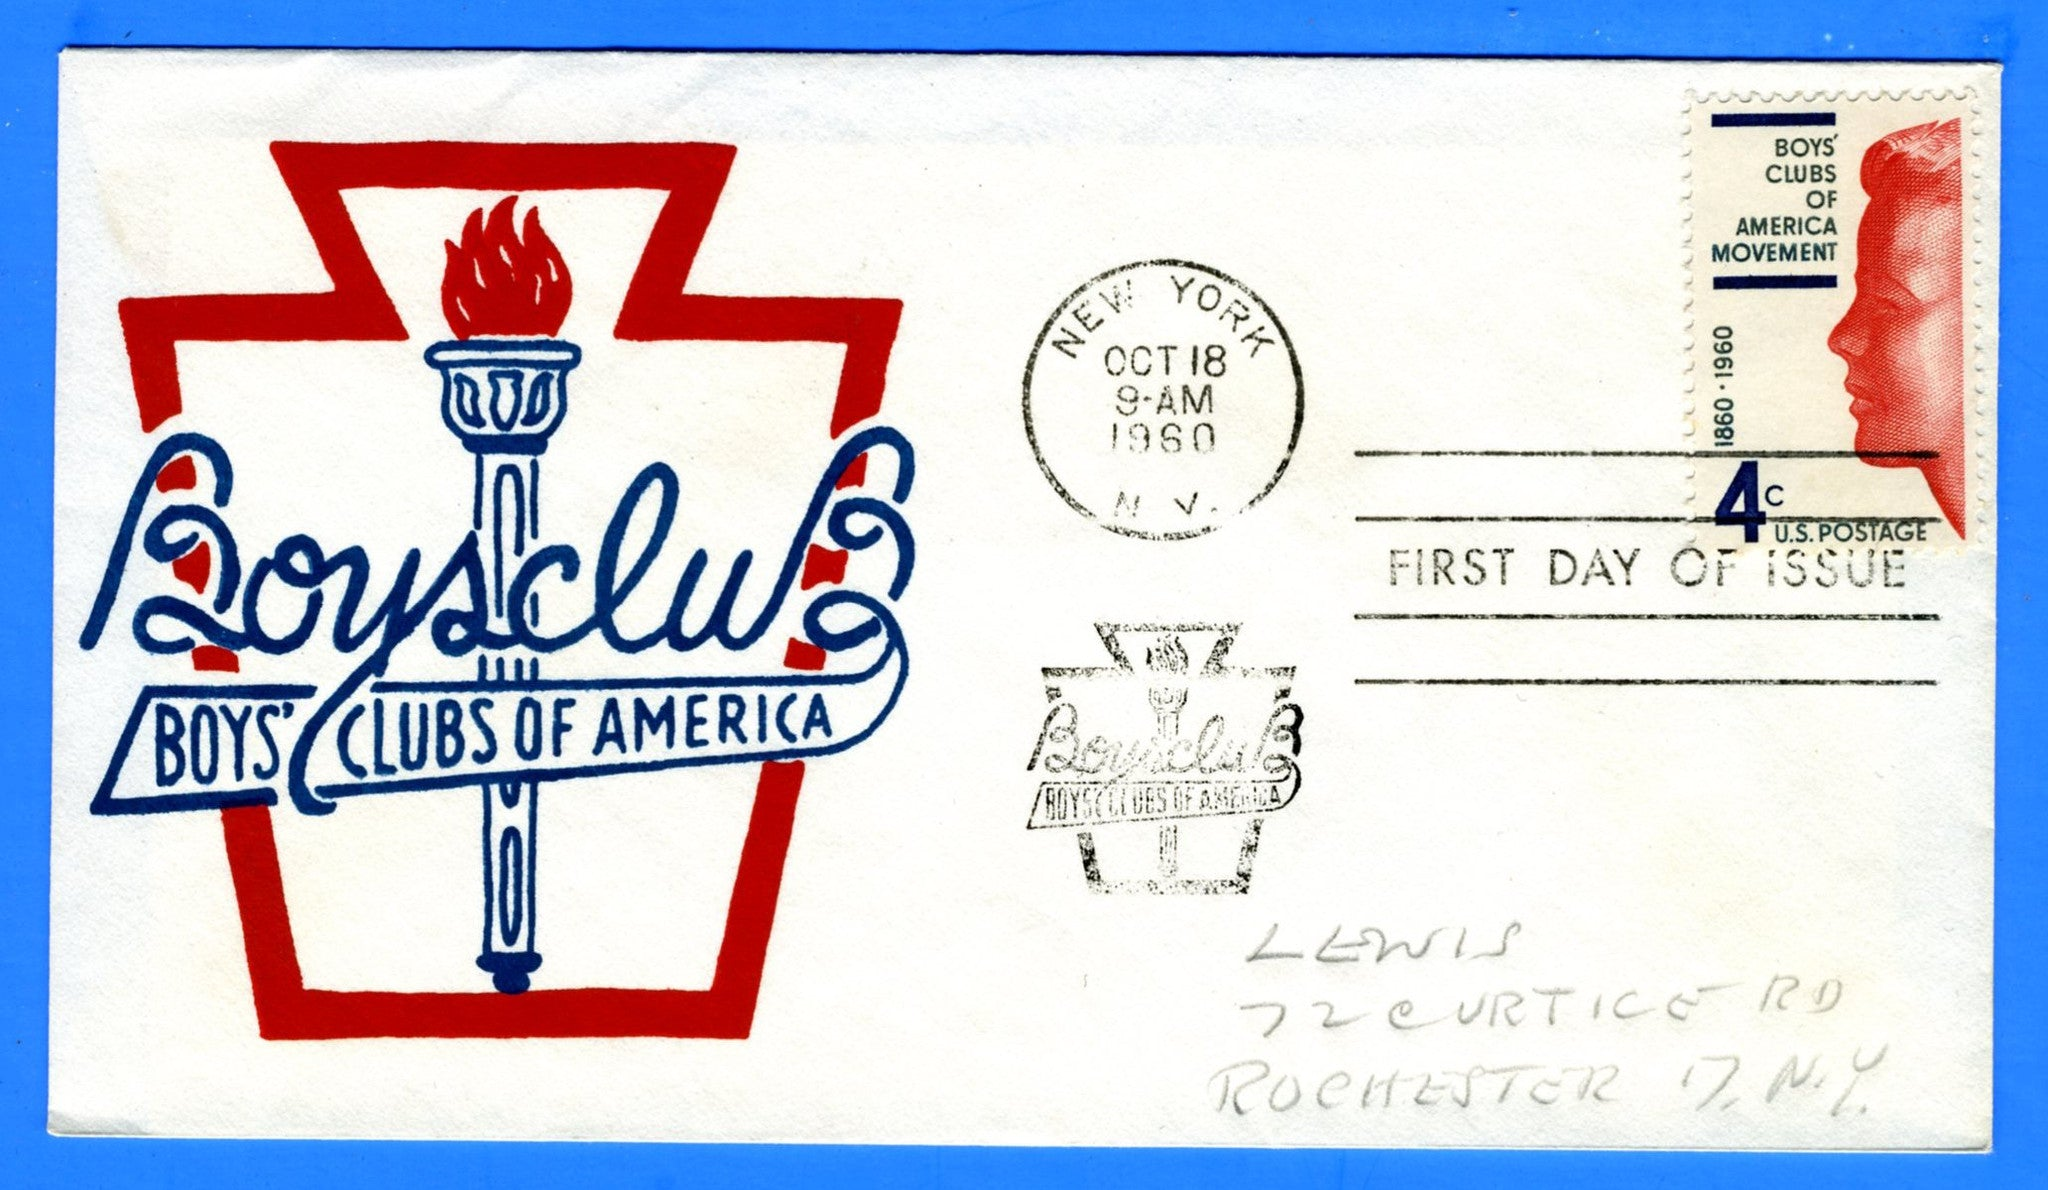 Scott 1163 Boys Club of America Silk Screen First Day Cover by Eric Lewis - Very Rare - Only Nine Known Copies